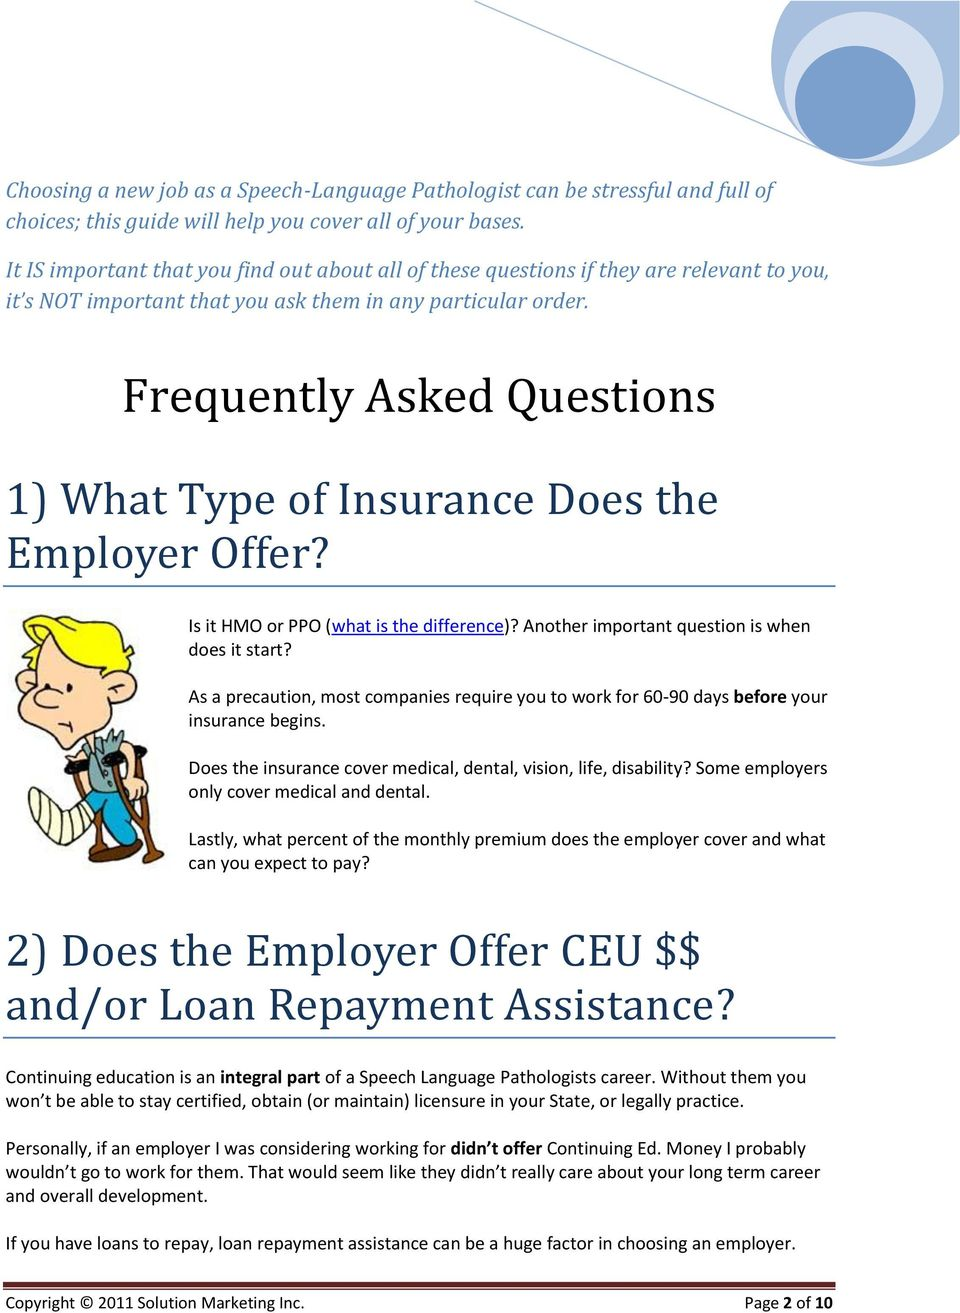 Frequently Asked Questions 1) What Type of Insurance Does the Employer Offer? Is it HMO or PPO (what is the difference)? Another important question is when does it start?